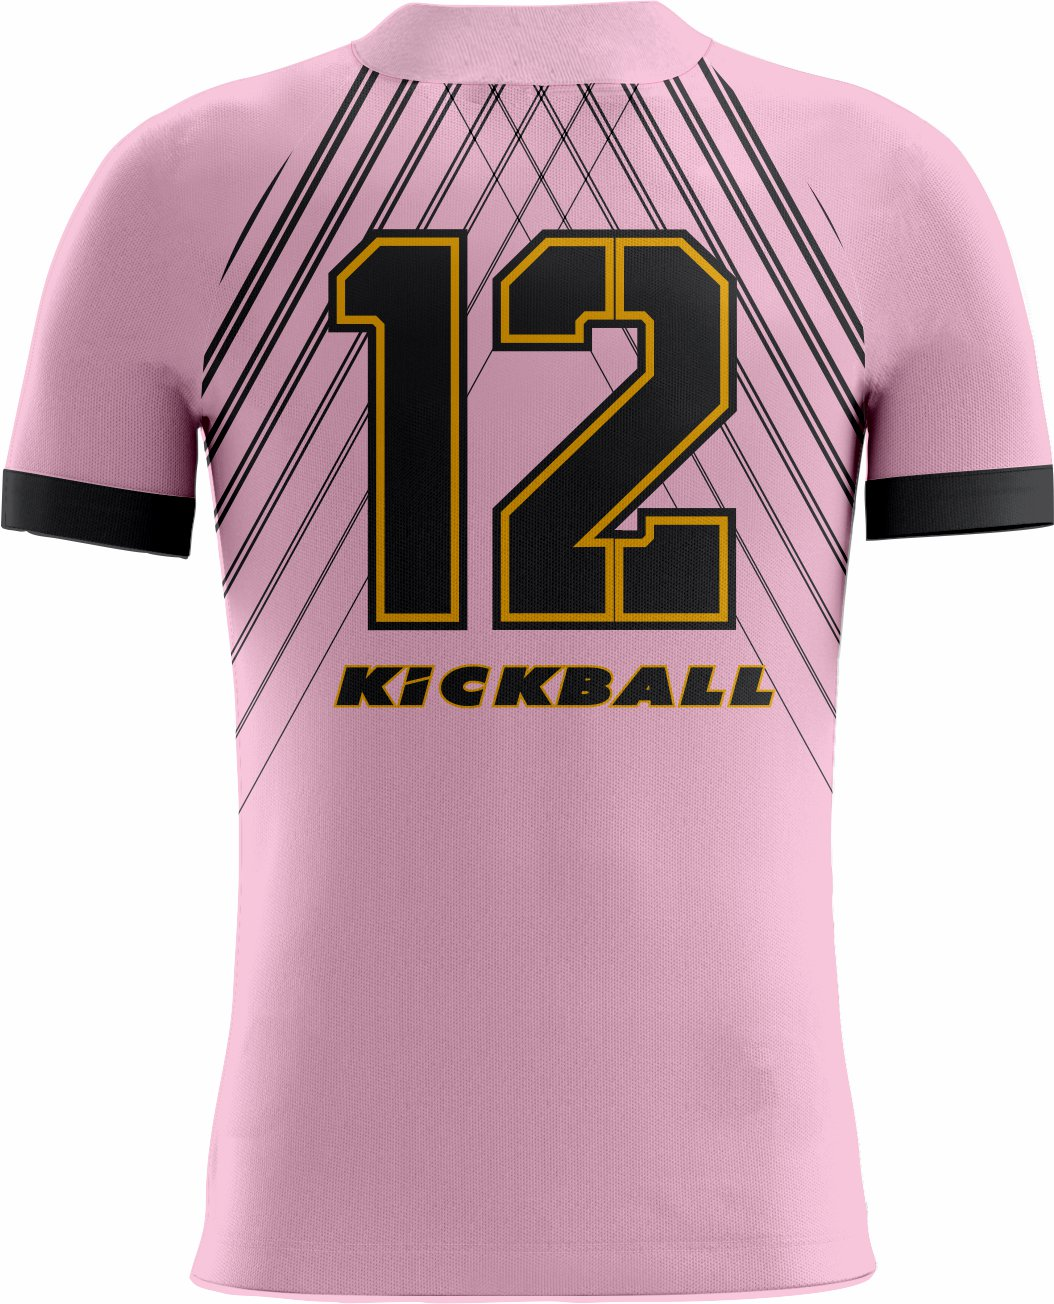 Camisa INFANTIL Rio Preto Weilers Tryout Outubro Rosa